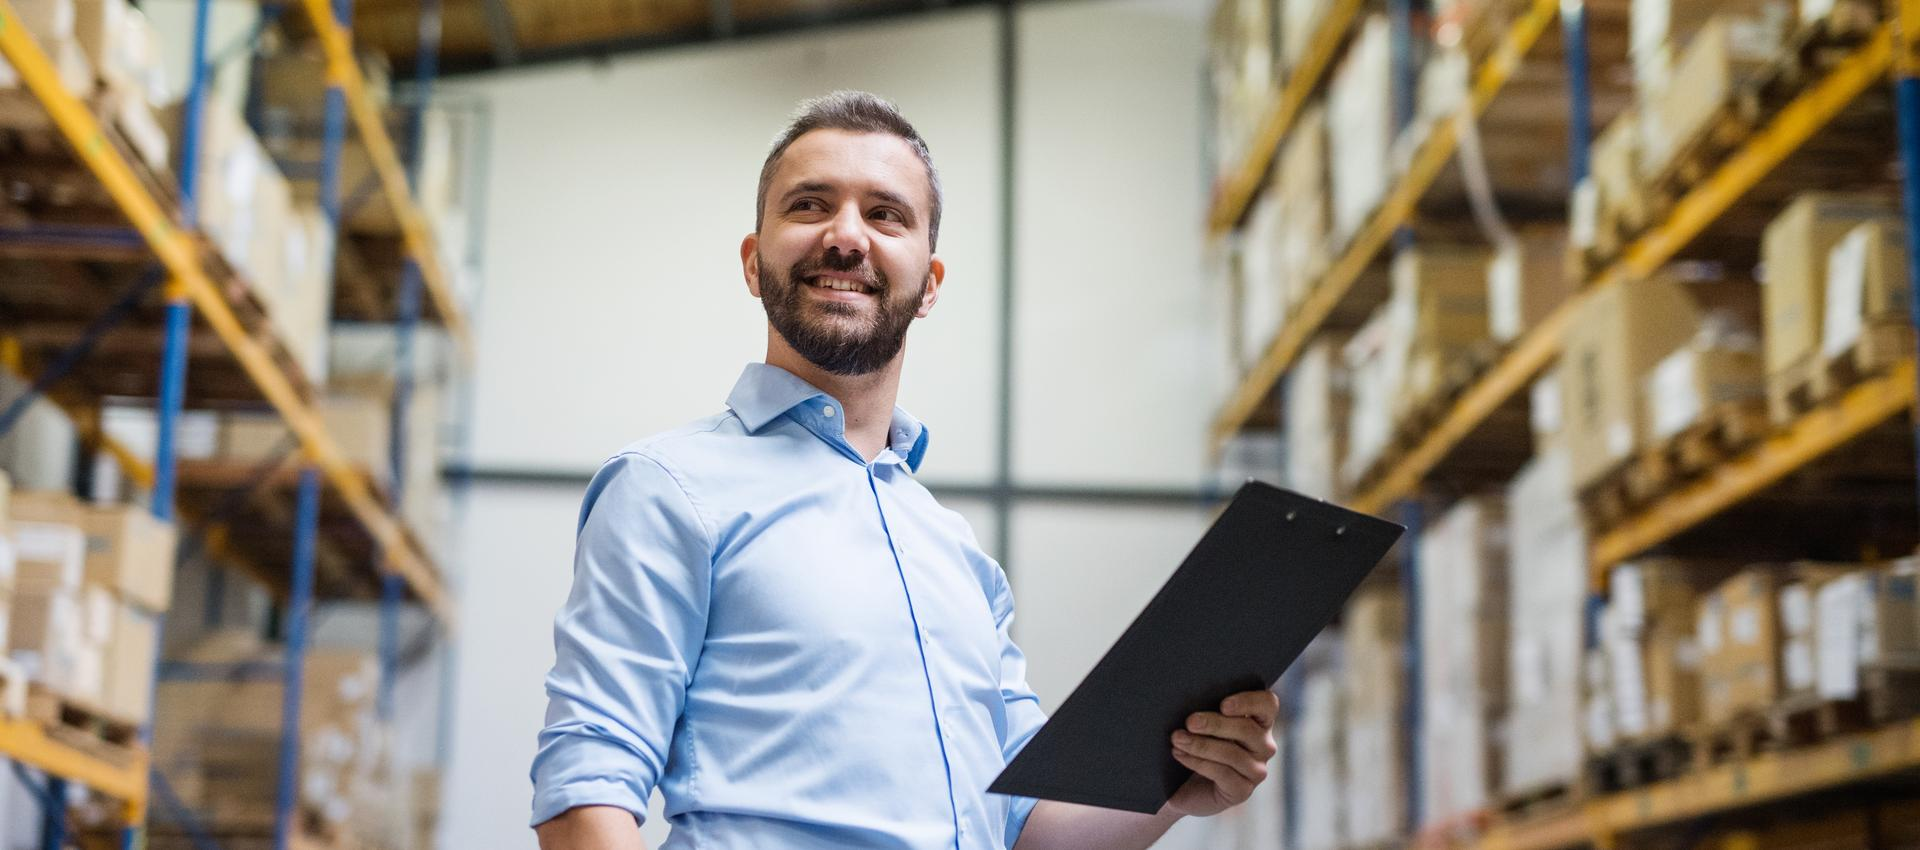 How 24x7 IT Support & Proactivity Can Reduce Supply Chain Disruptions